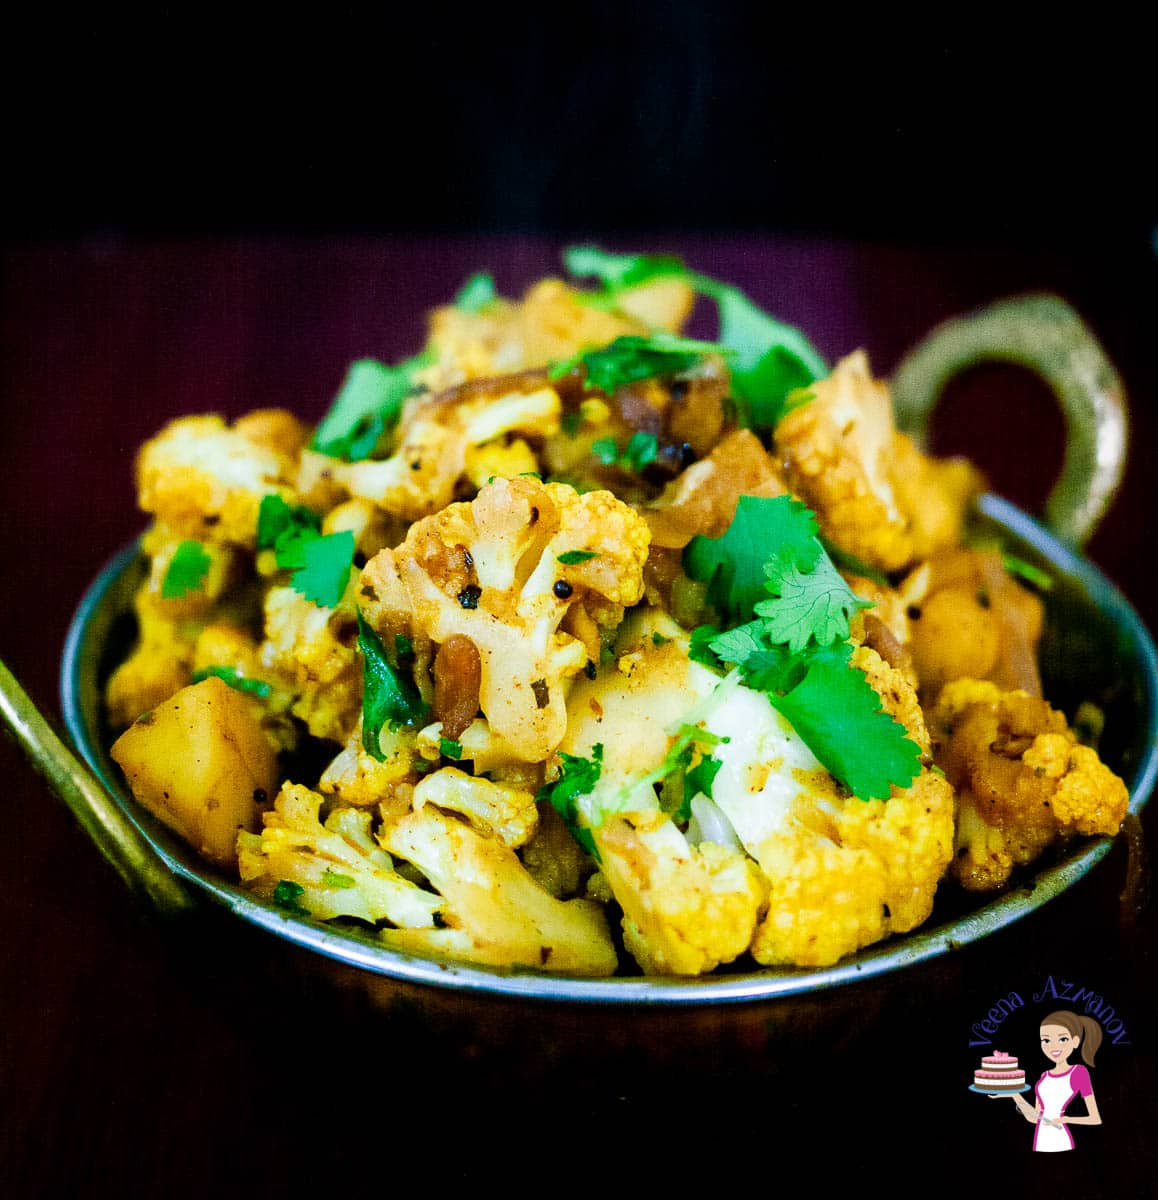 An Indian pot with sautéed cauliflower and potatoes